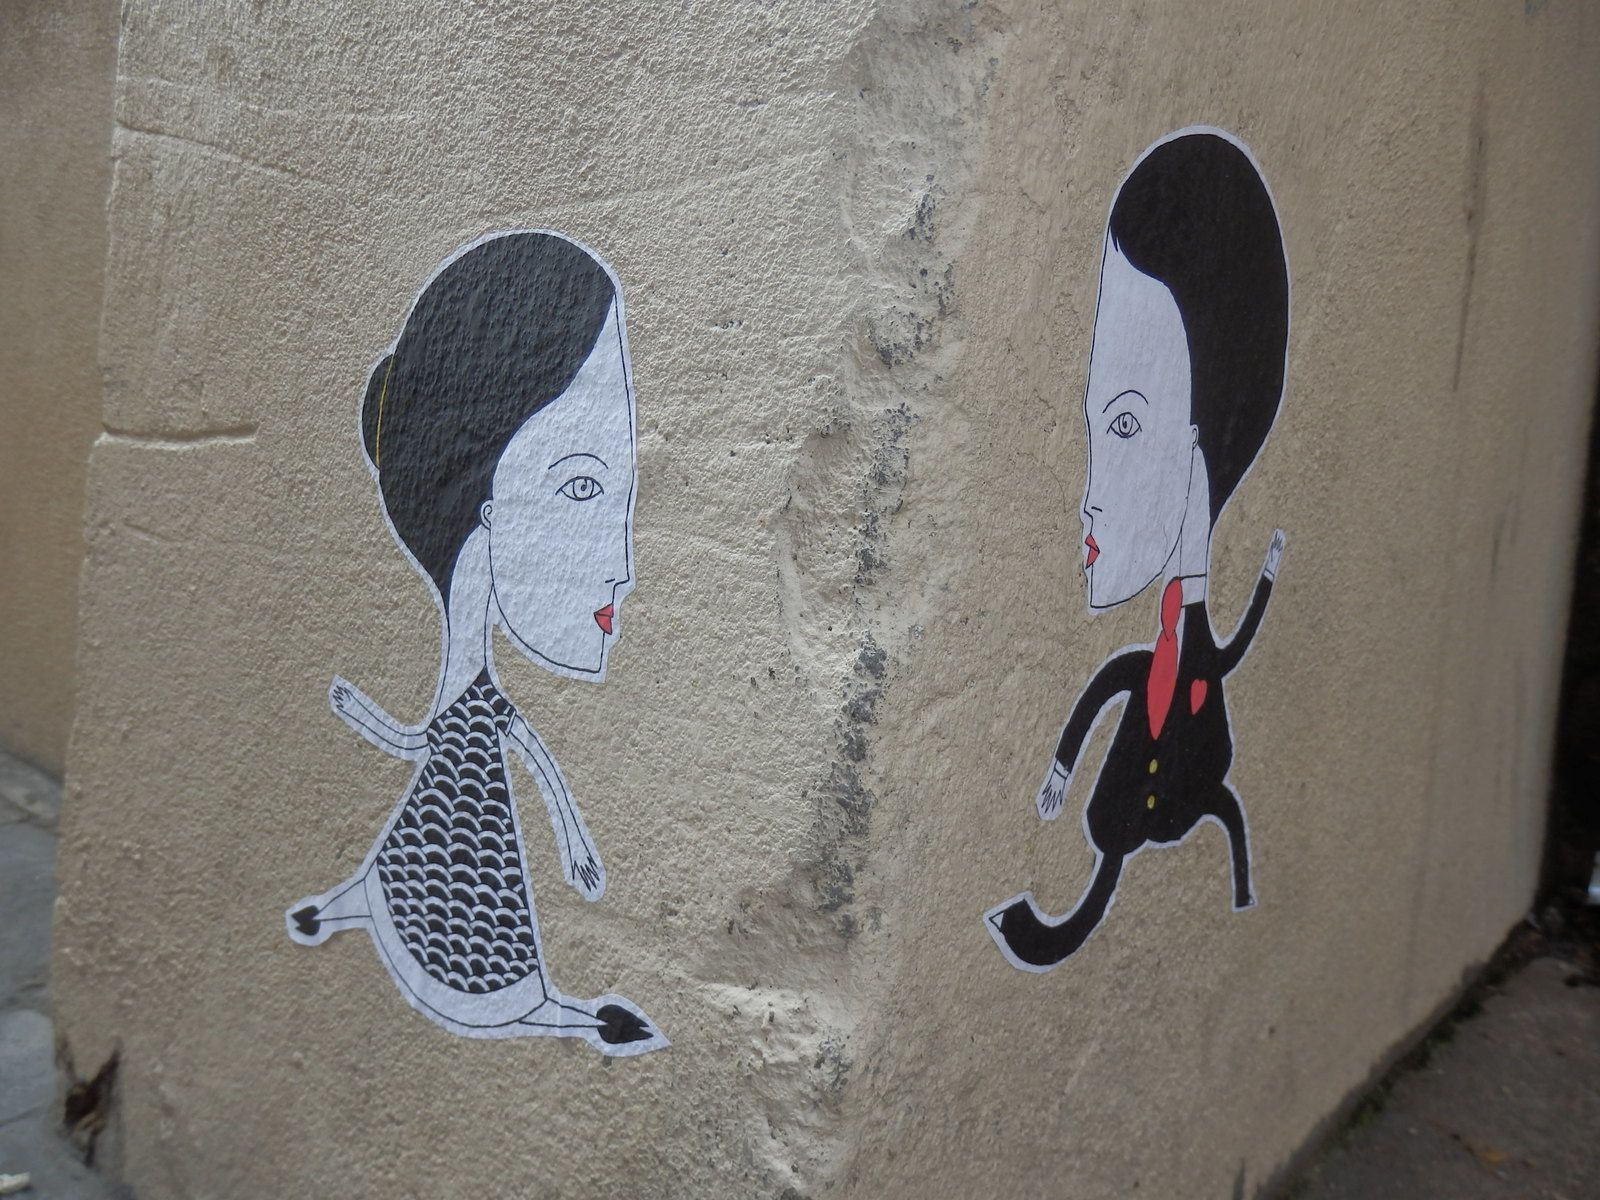 Fred Le Chevalier &quot&#x3B;Bal et Dépendances&quot&#x3B; in Tours, France